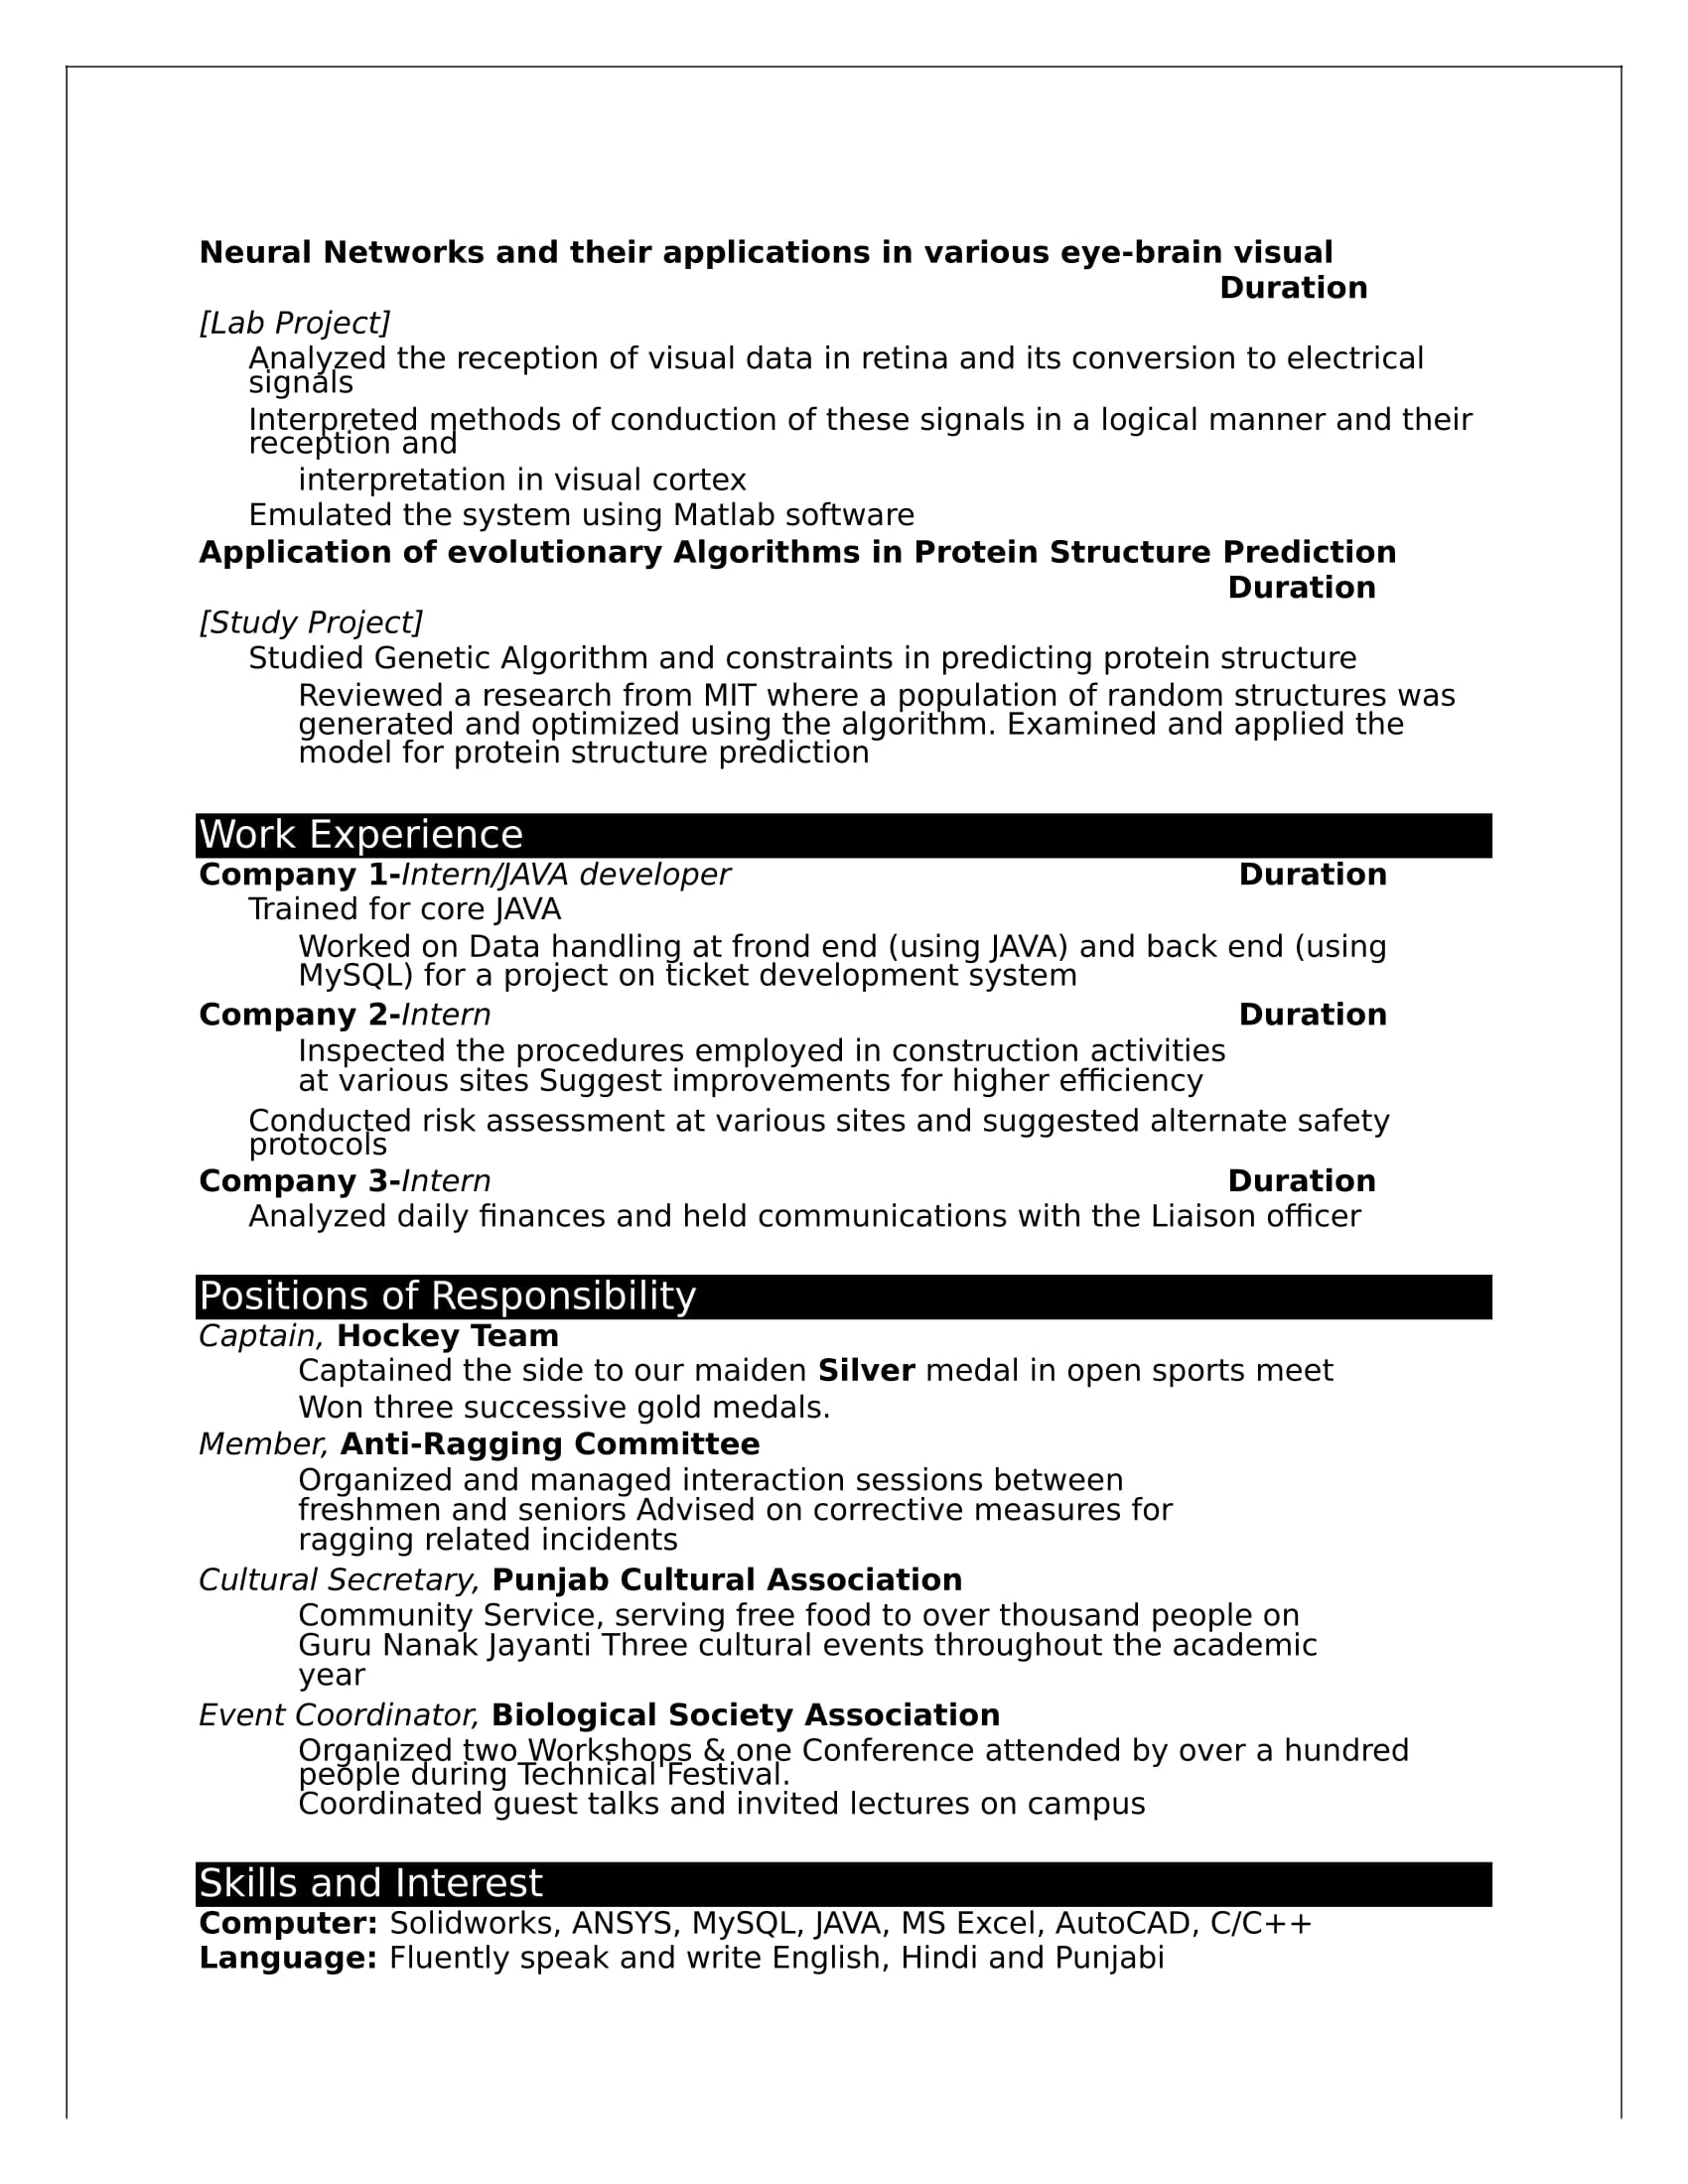 engineering fresher resume format in ms word best examples layout of for freshers aero Resume Layout Of Resume For Freshers